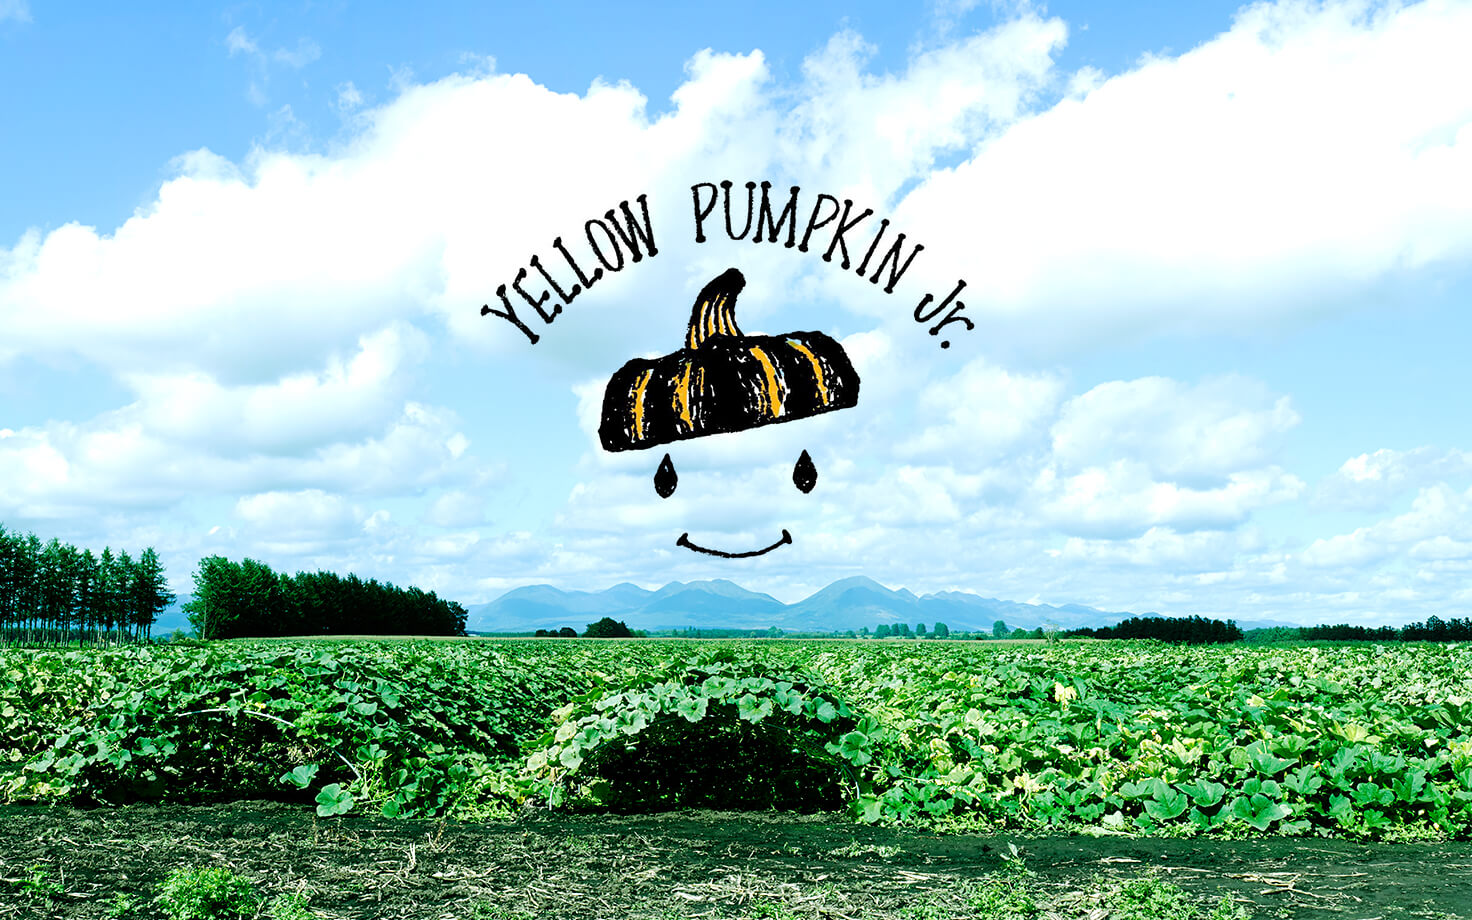 YELLOW PUMPKIN Jr.